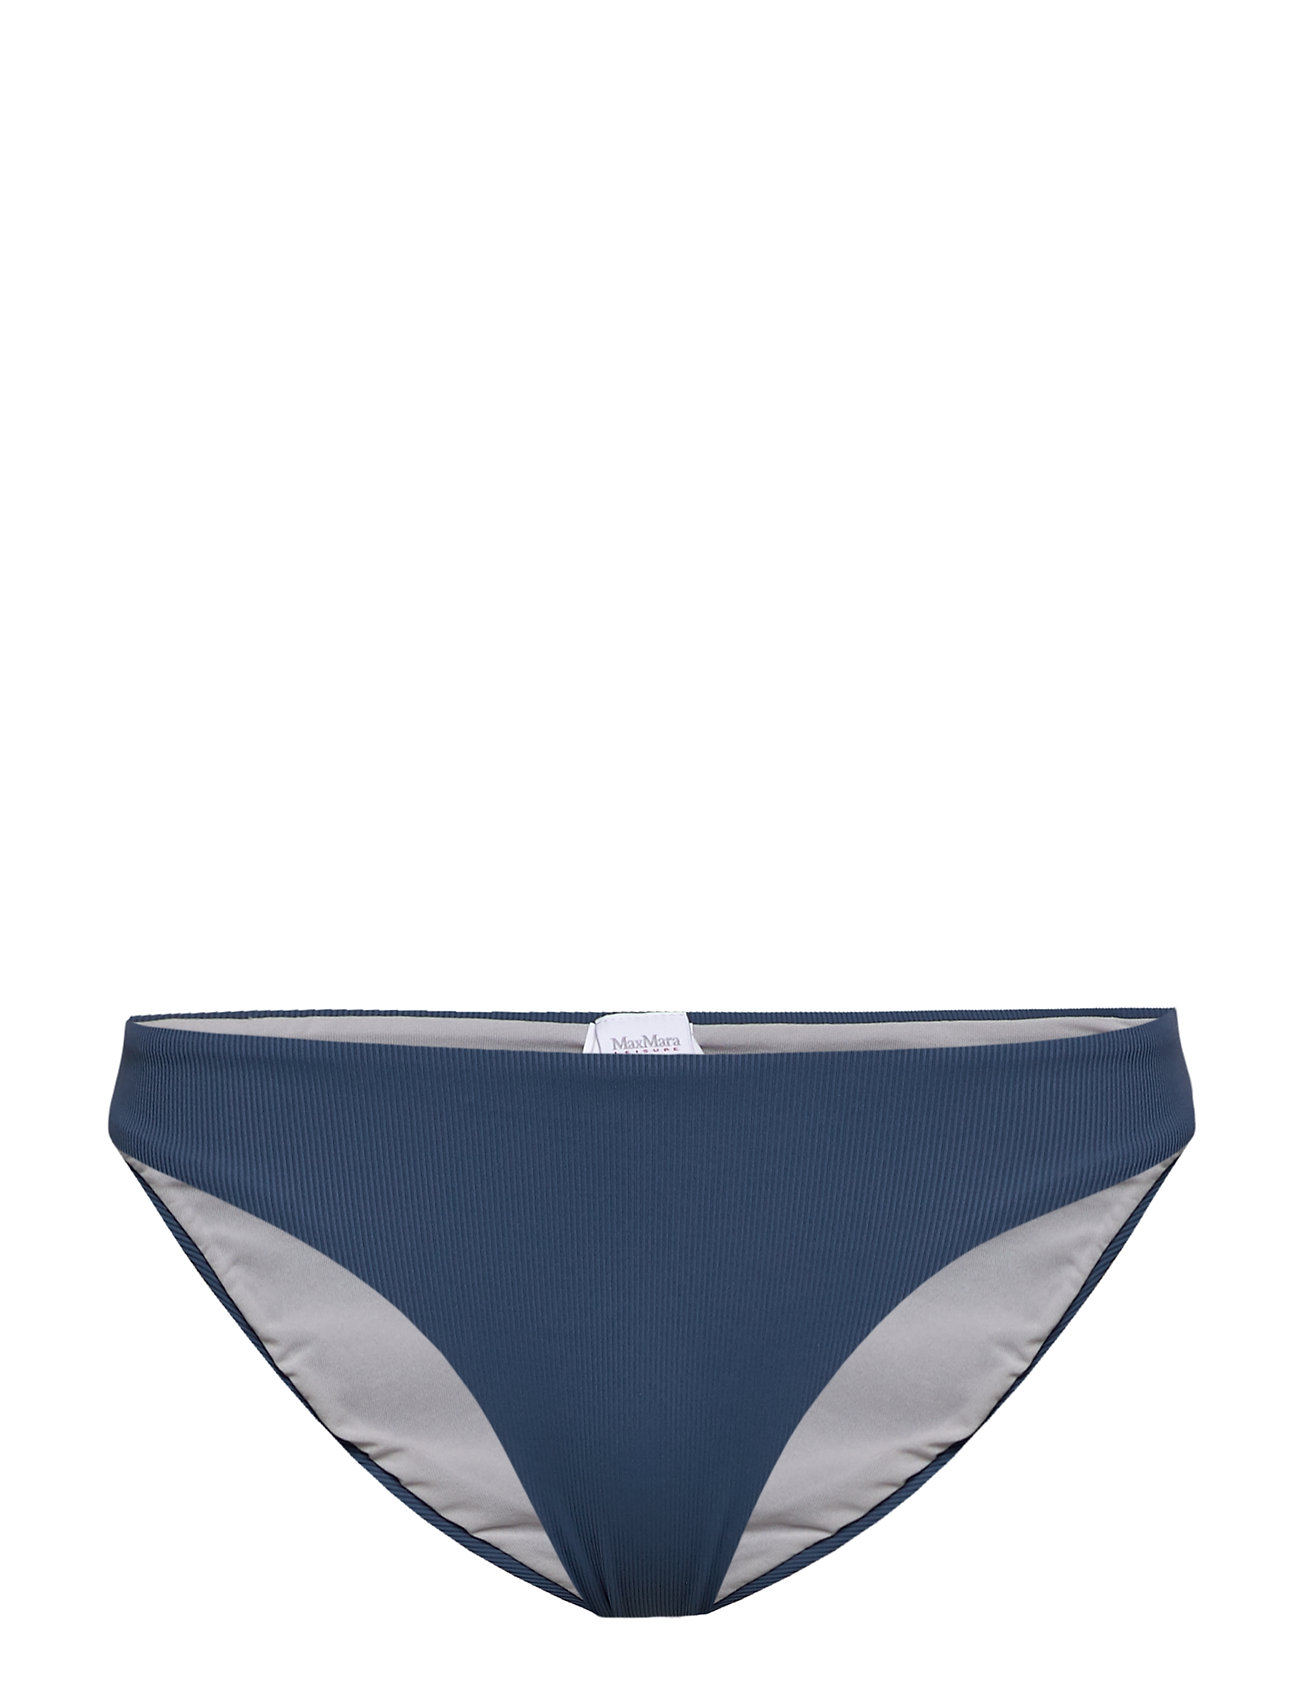 Image of 2menta Bikinitrusser Blå Max Mara Leisure (3372501855)